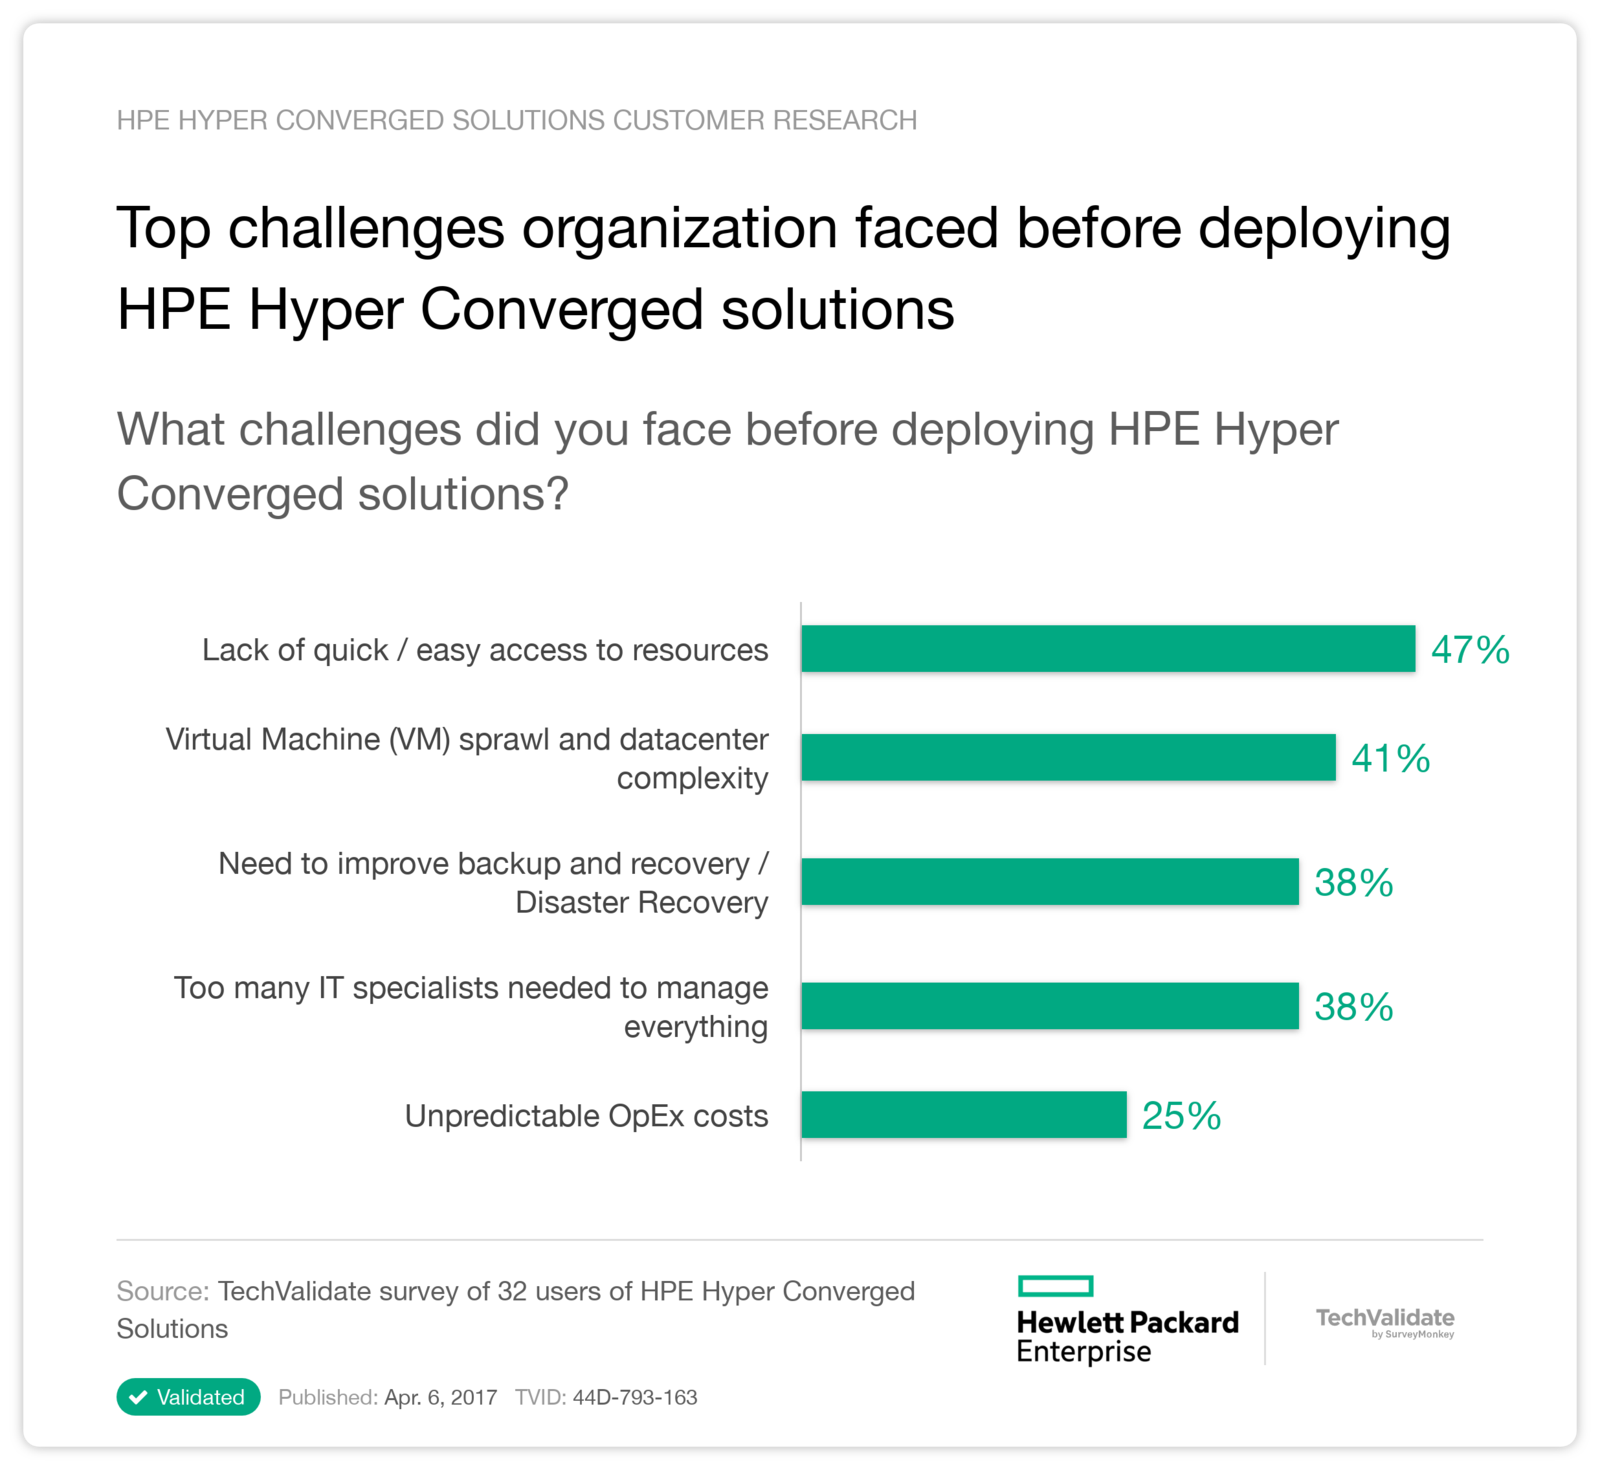 Top challenges organization faced before deploying HPE Hyper Converged solutions